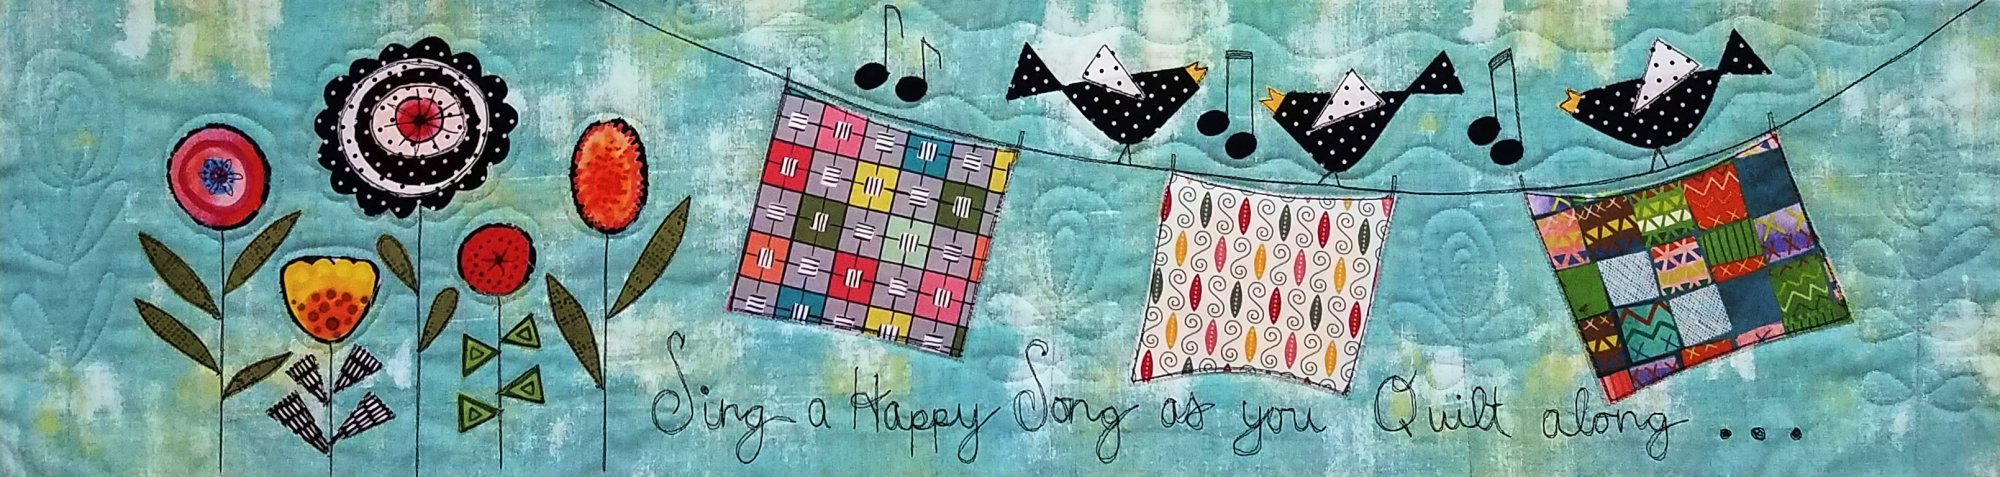 2018 Row By Row -Sing a Happy Song- Kit